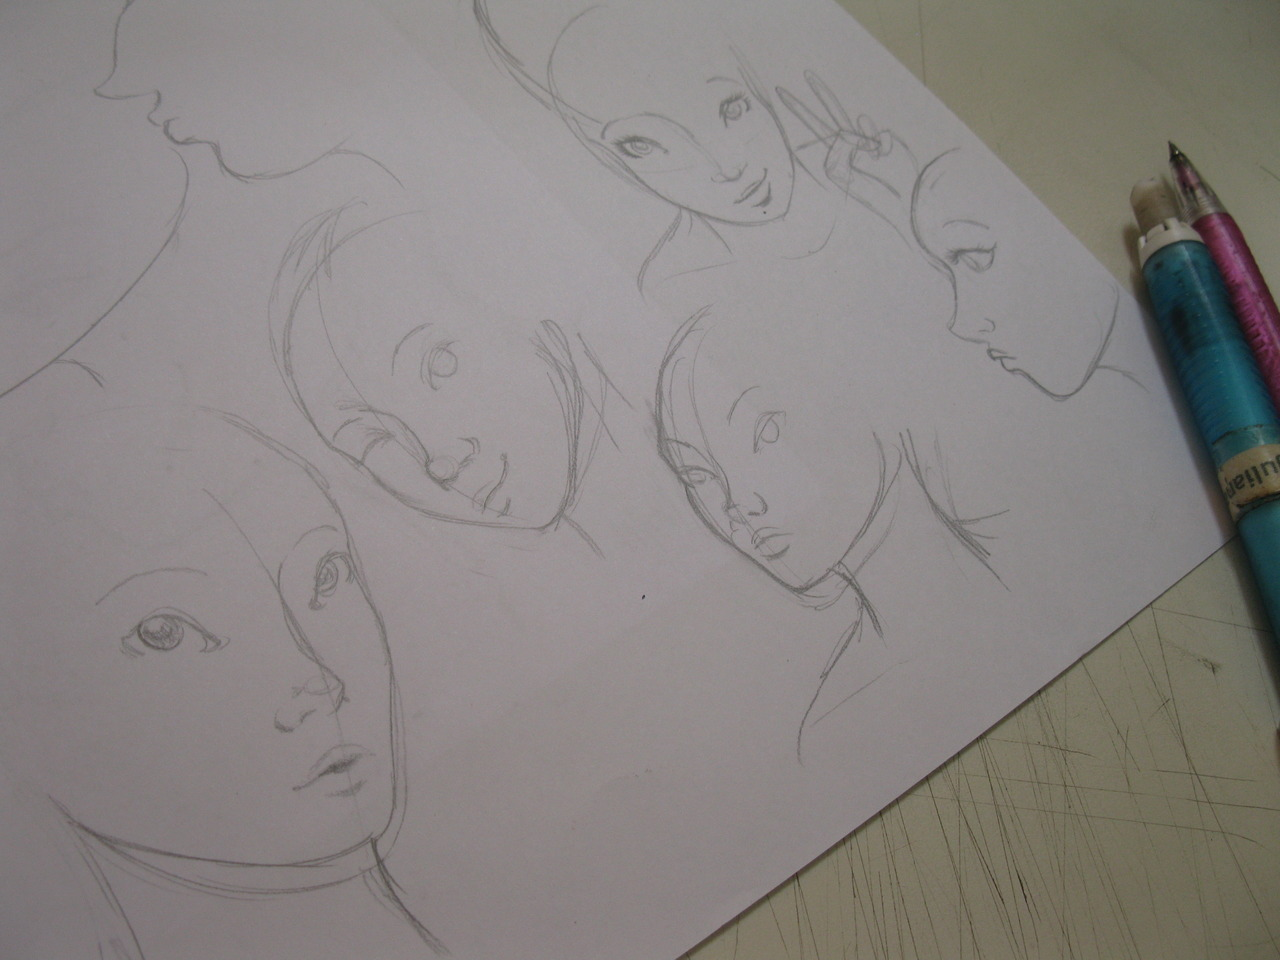 More studies!  See more on my blog! :D http://dropsdeilustracao.blogspot.com.br/